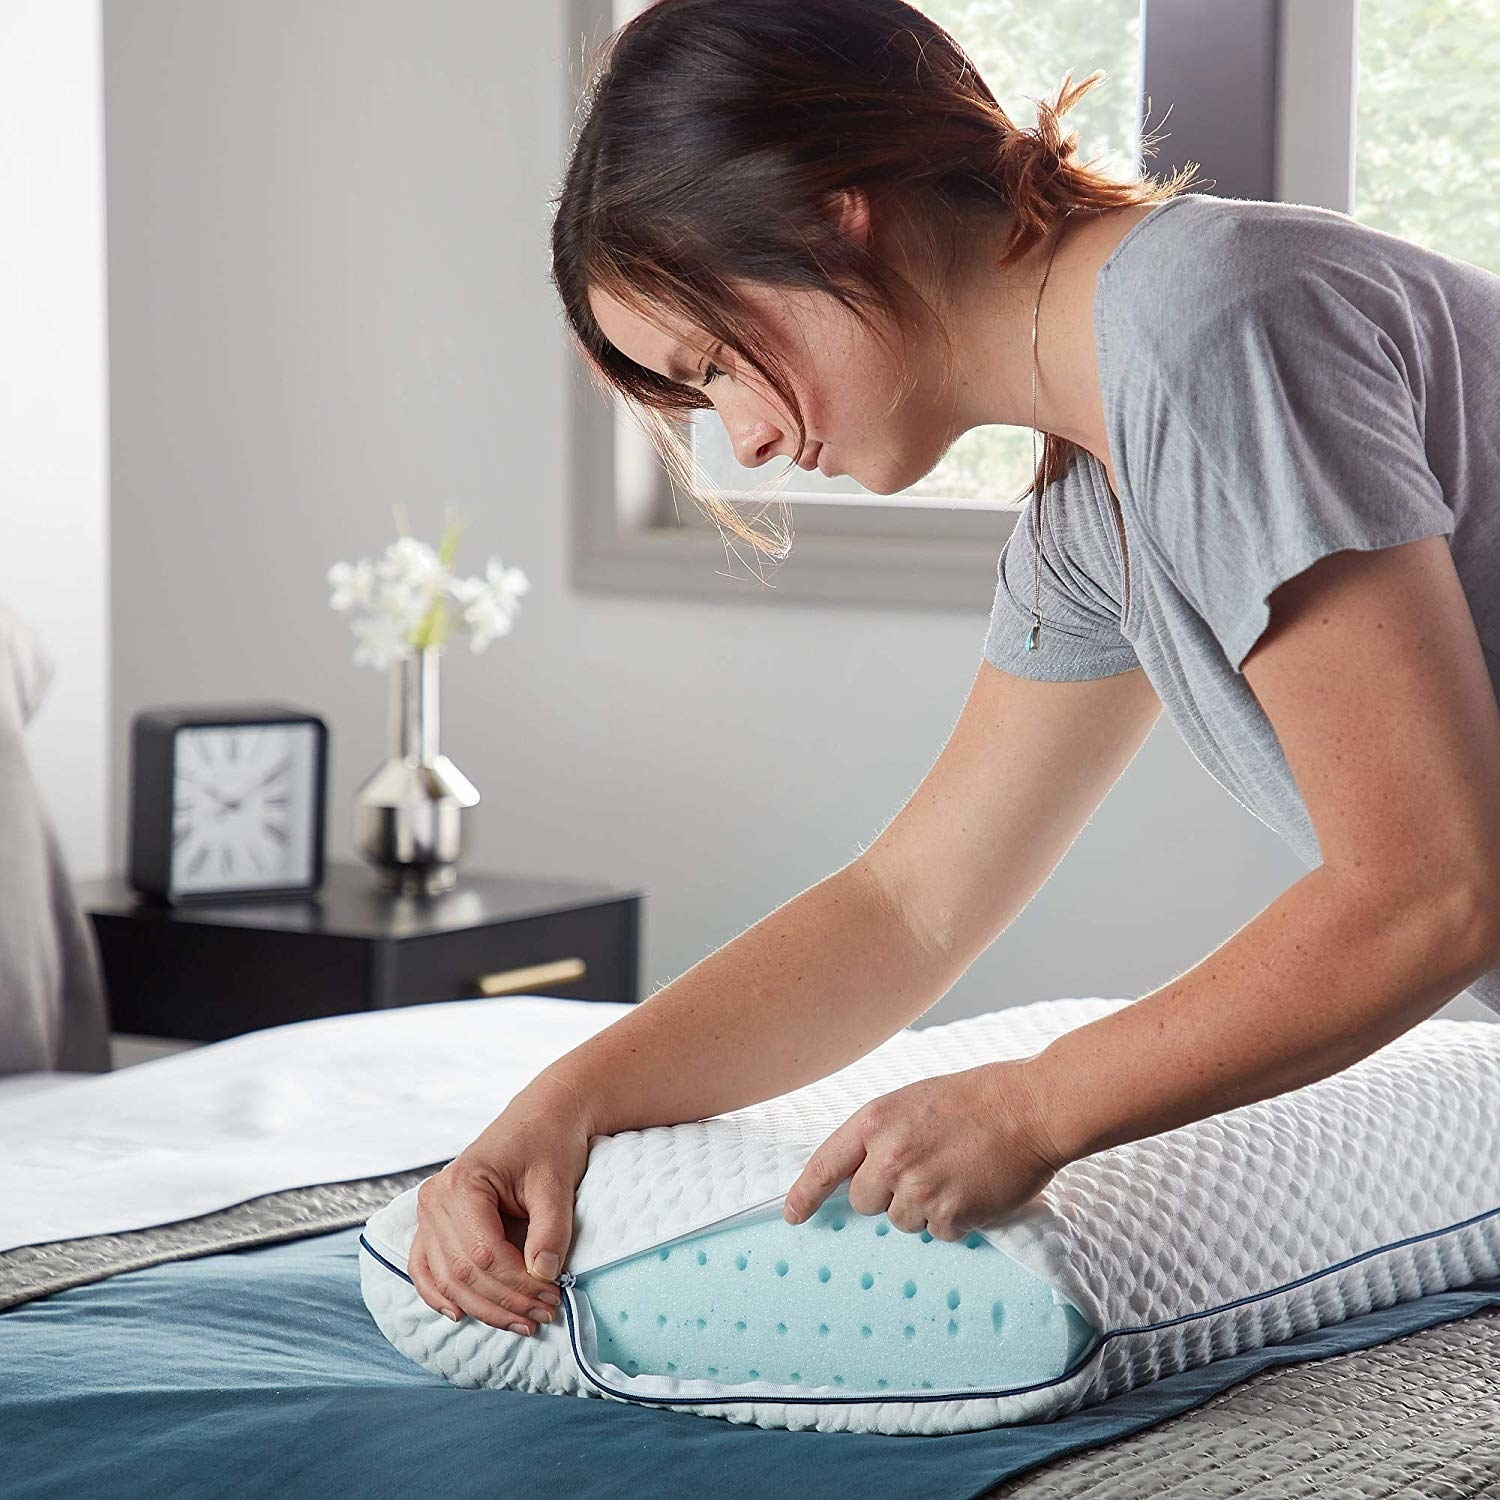 Hundreds Of People Swear By This Stay Cool Ventilated Pillow